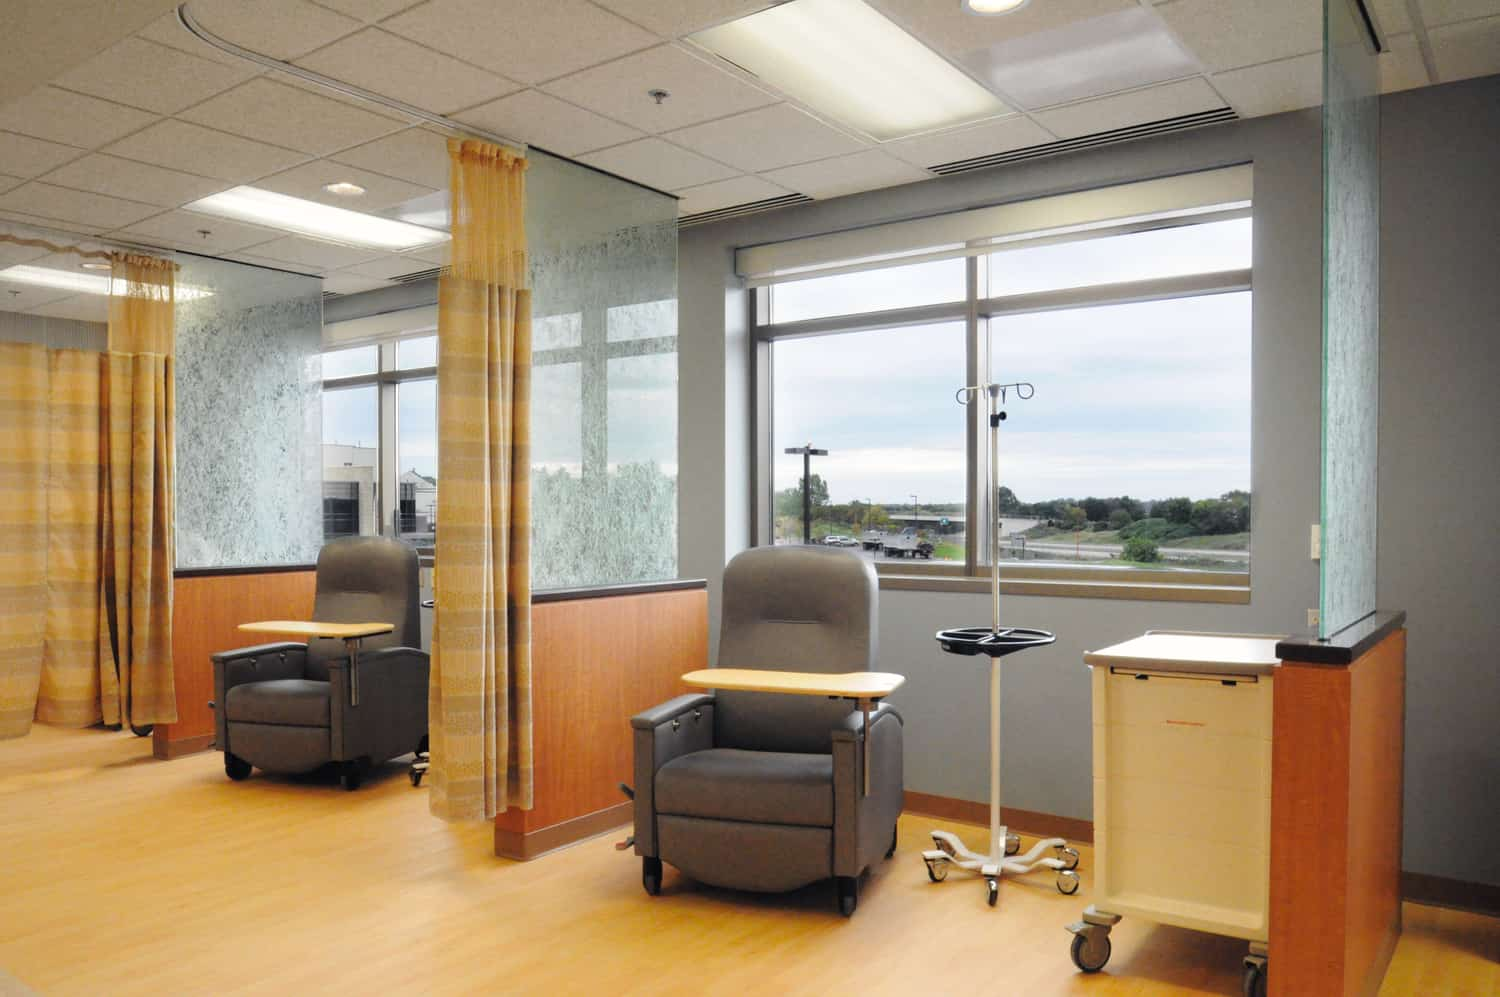 Fairview Ridges Hospital Outpatient Specialty Center and Hospital Expansion